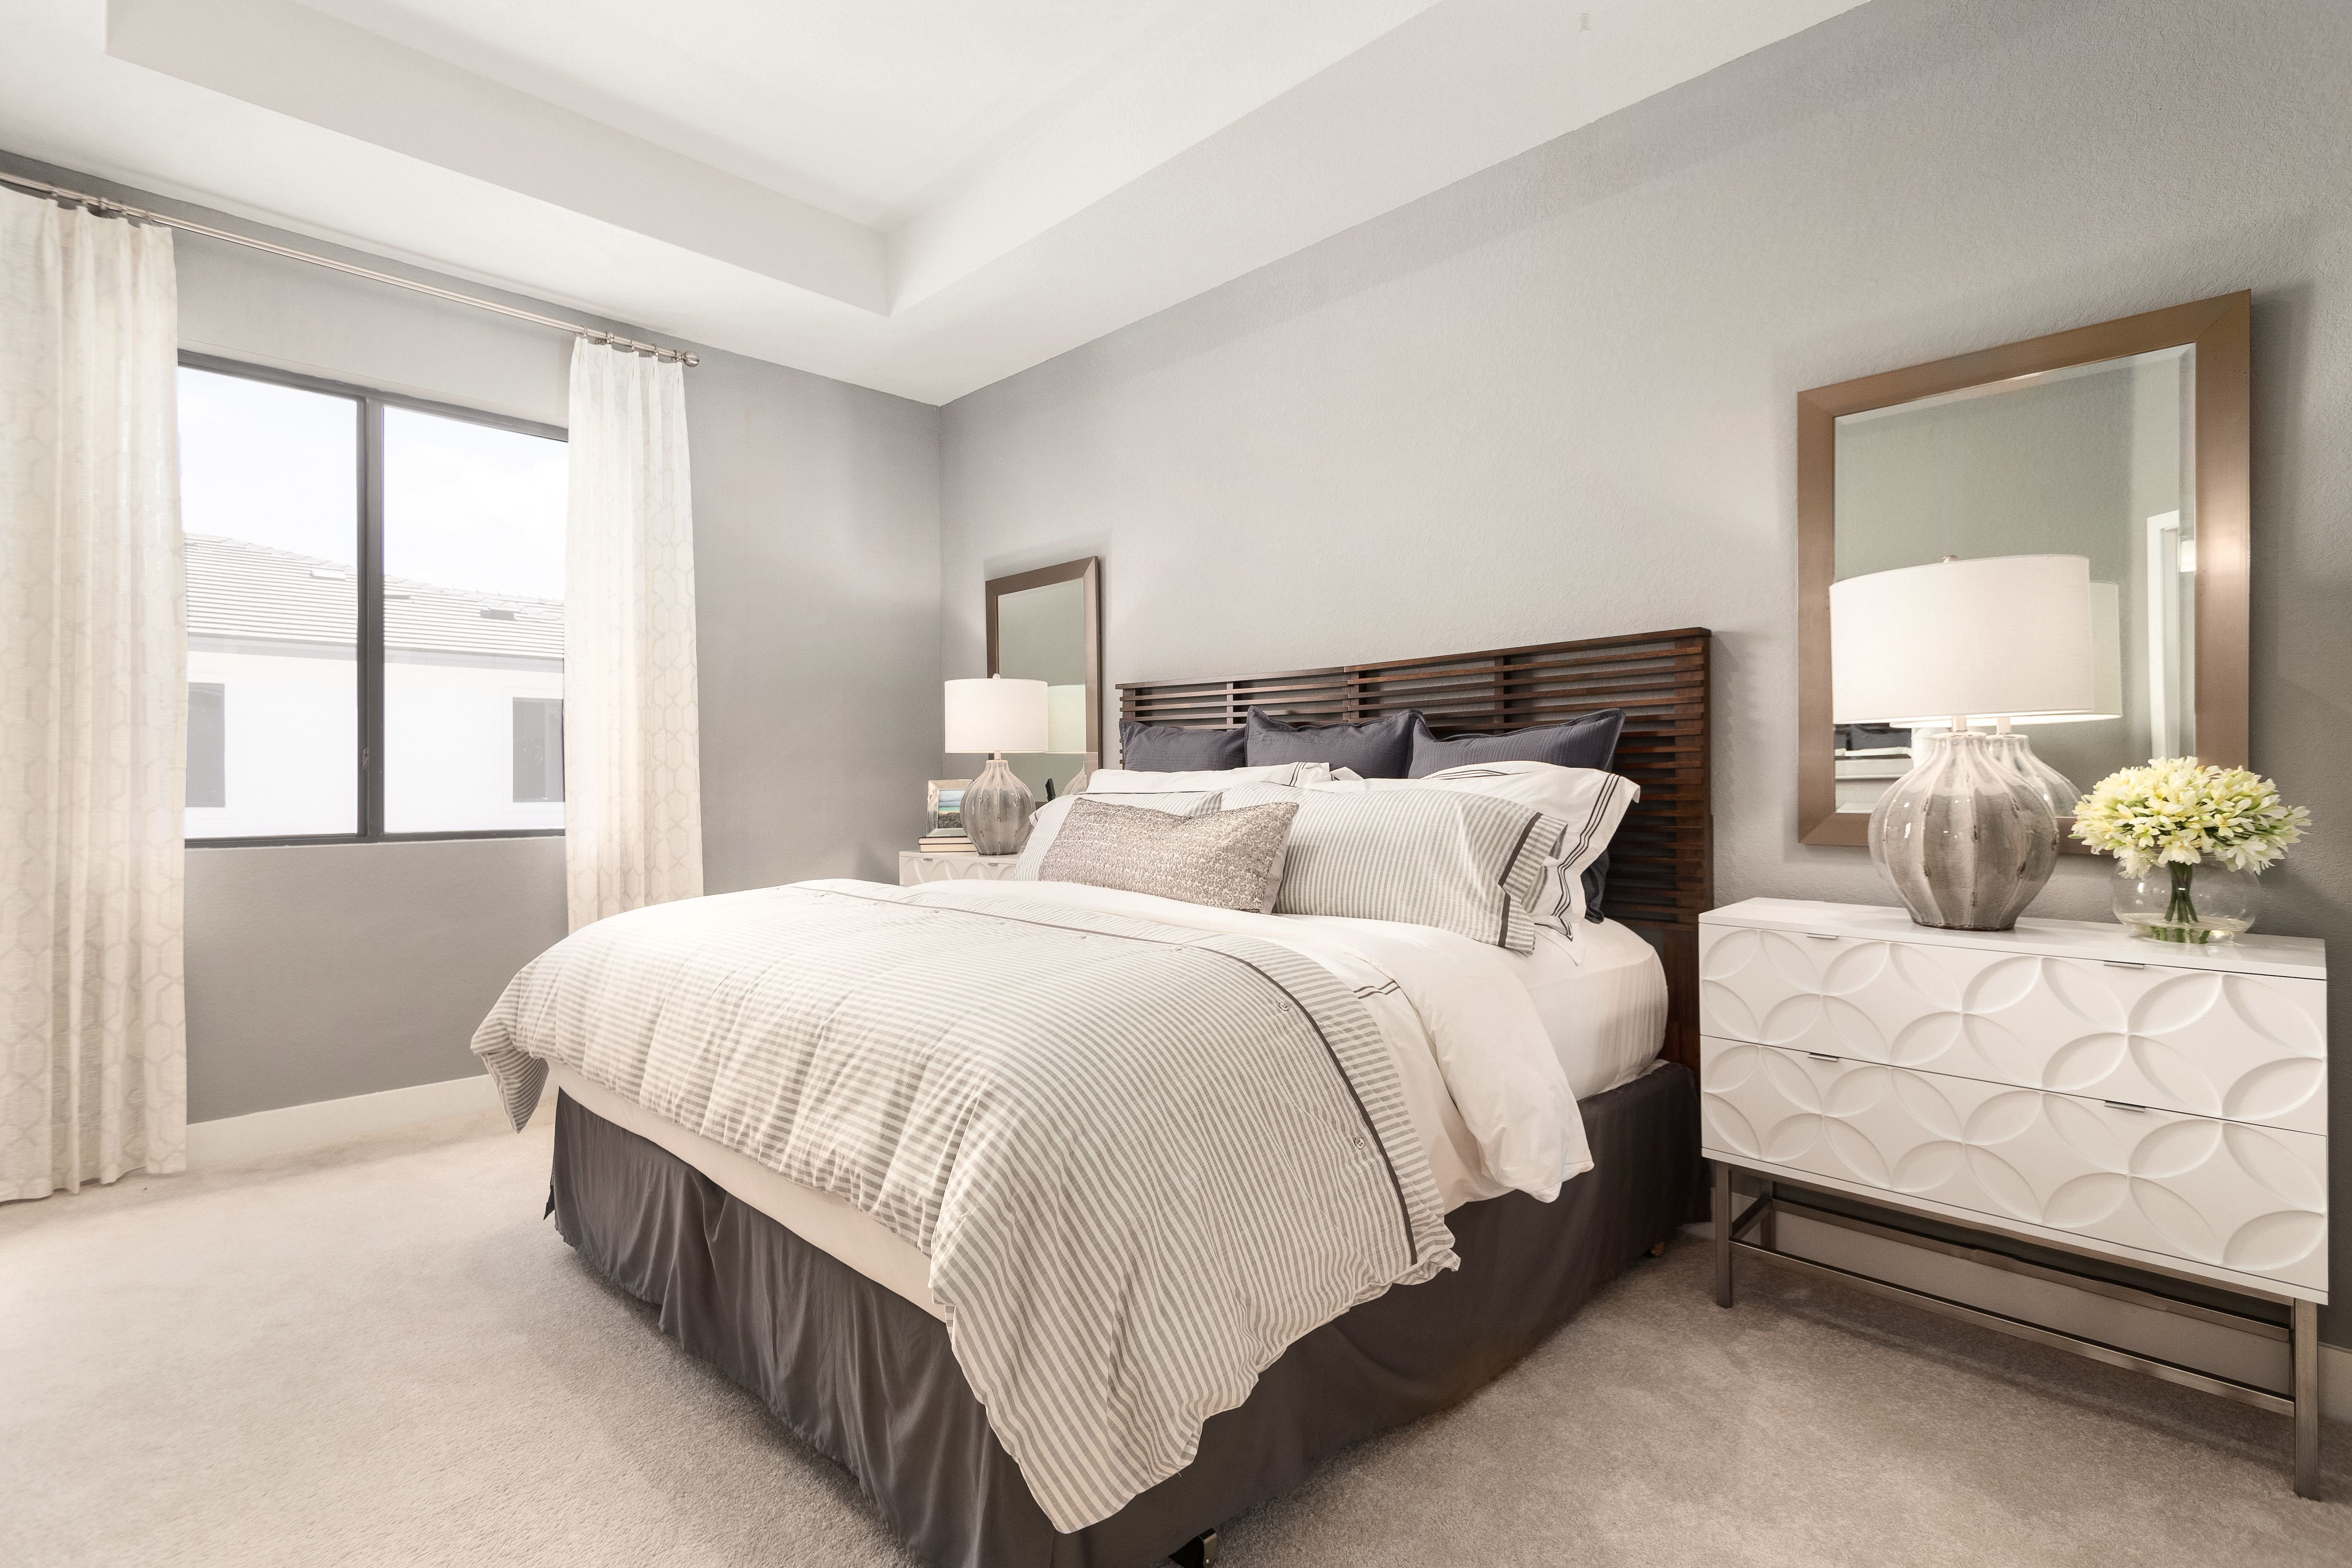 Bedroom featured in the Islandia By Ryan Homes in Miami-Dade County, FL